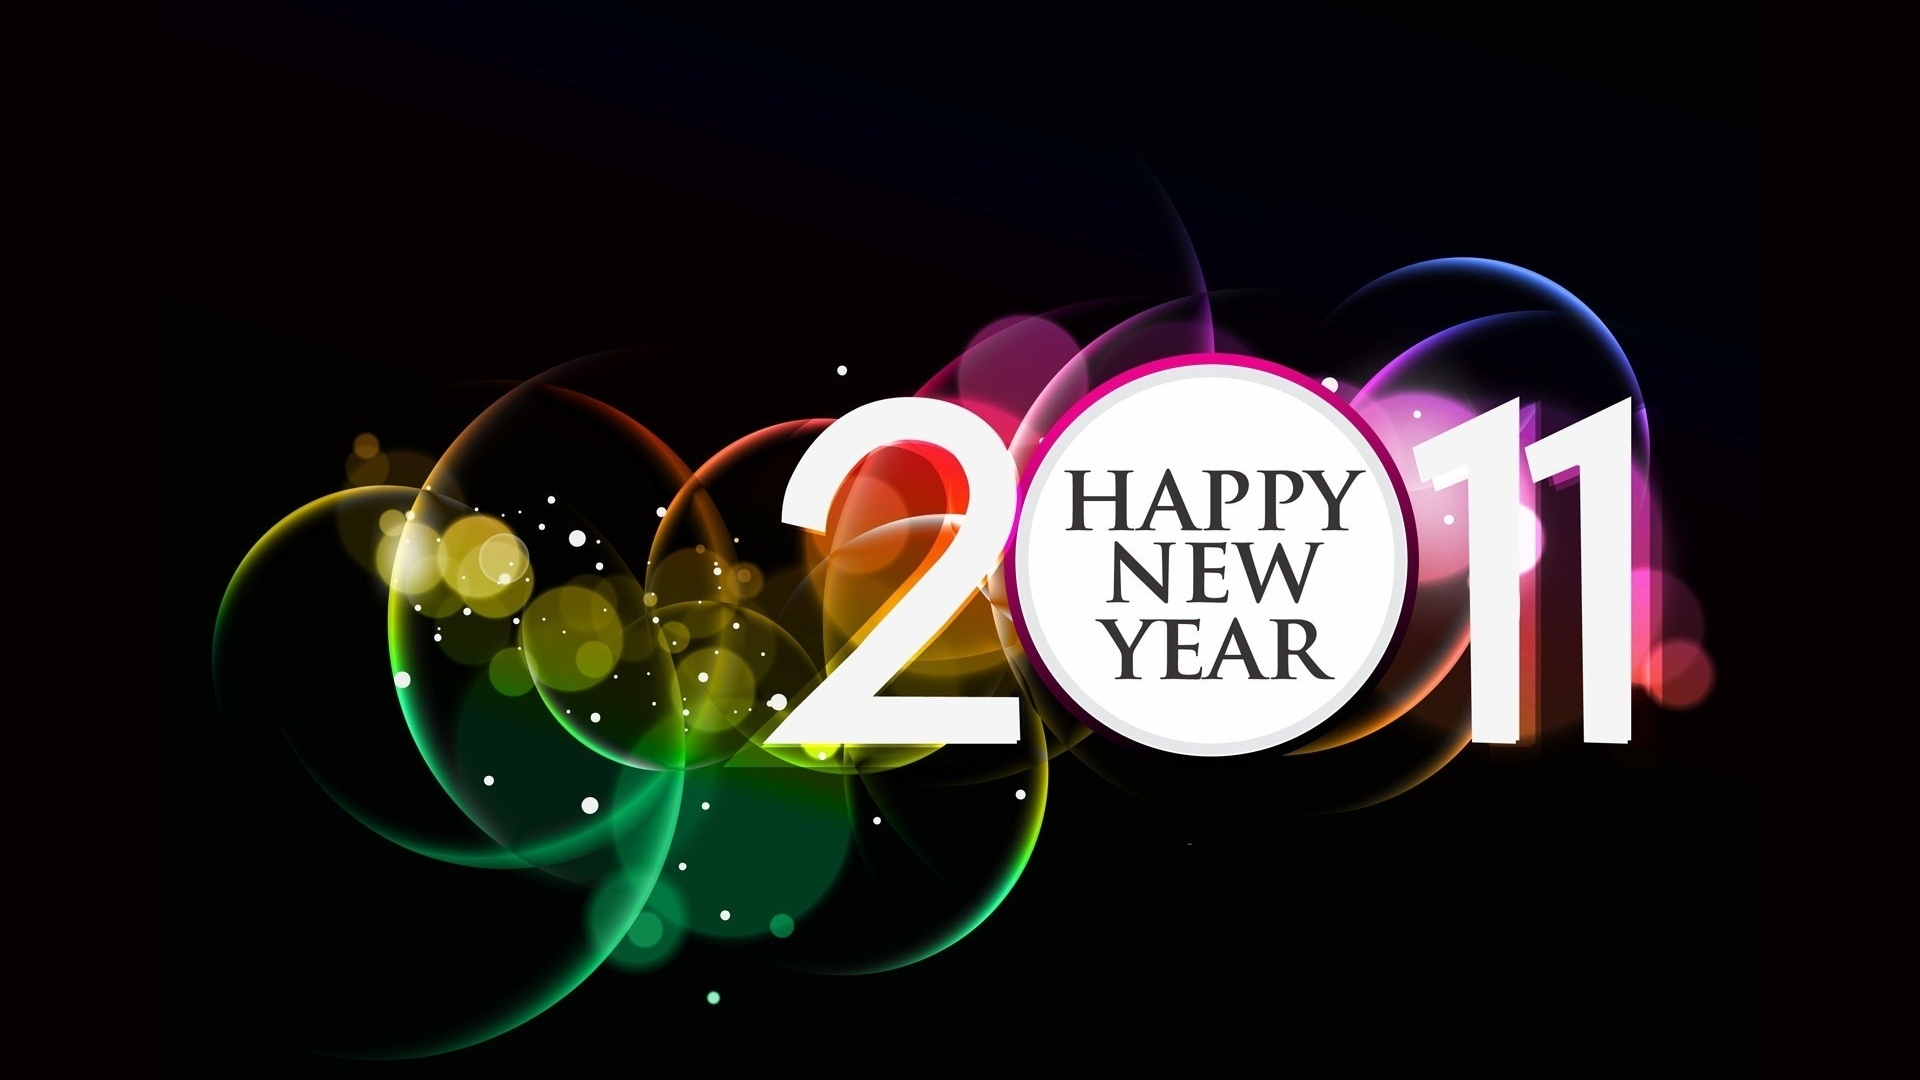 Happy New 2011 Year